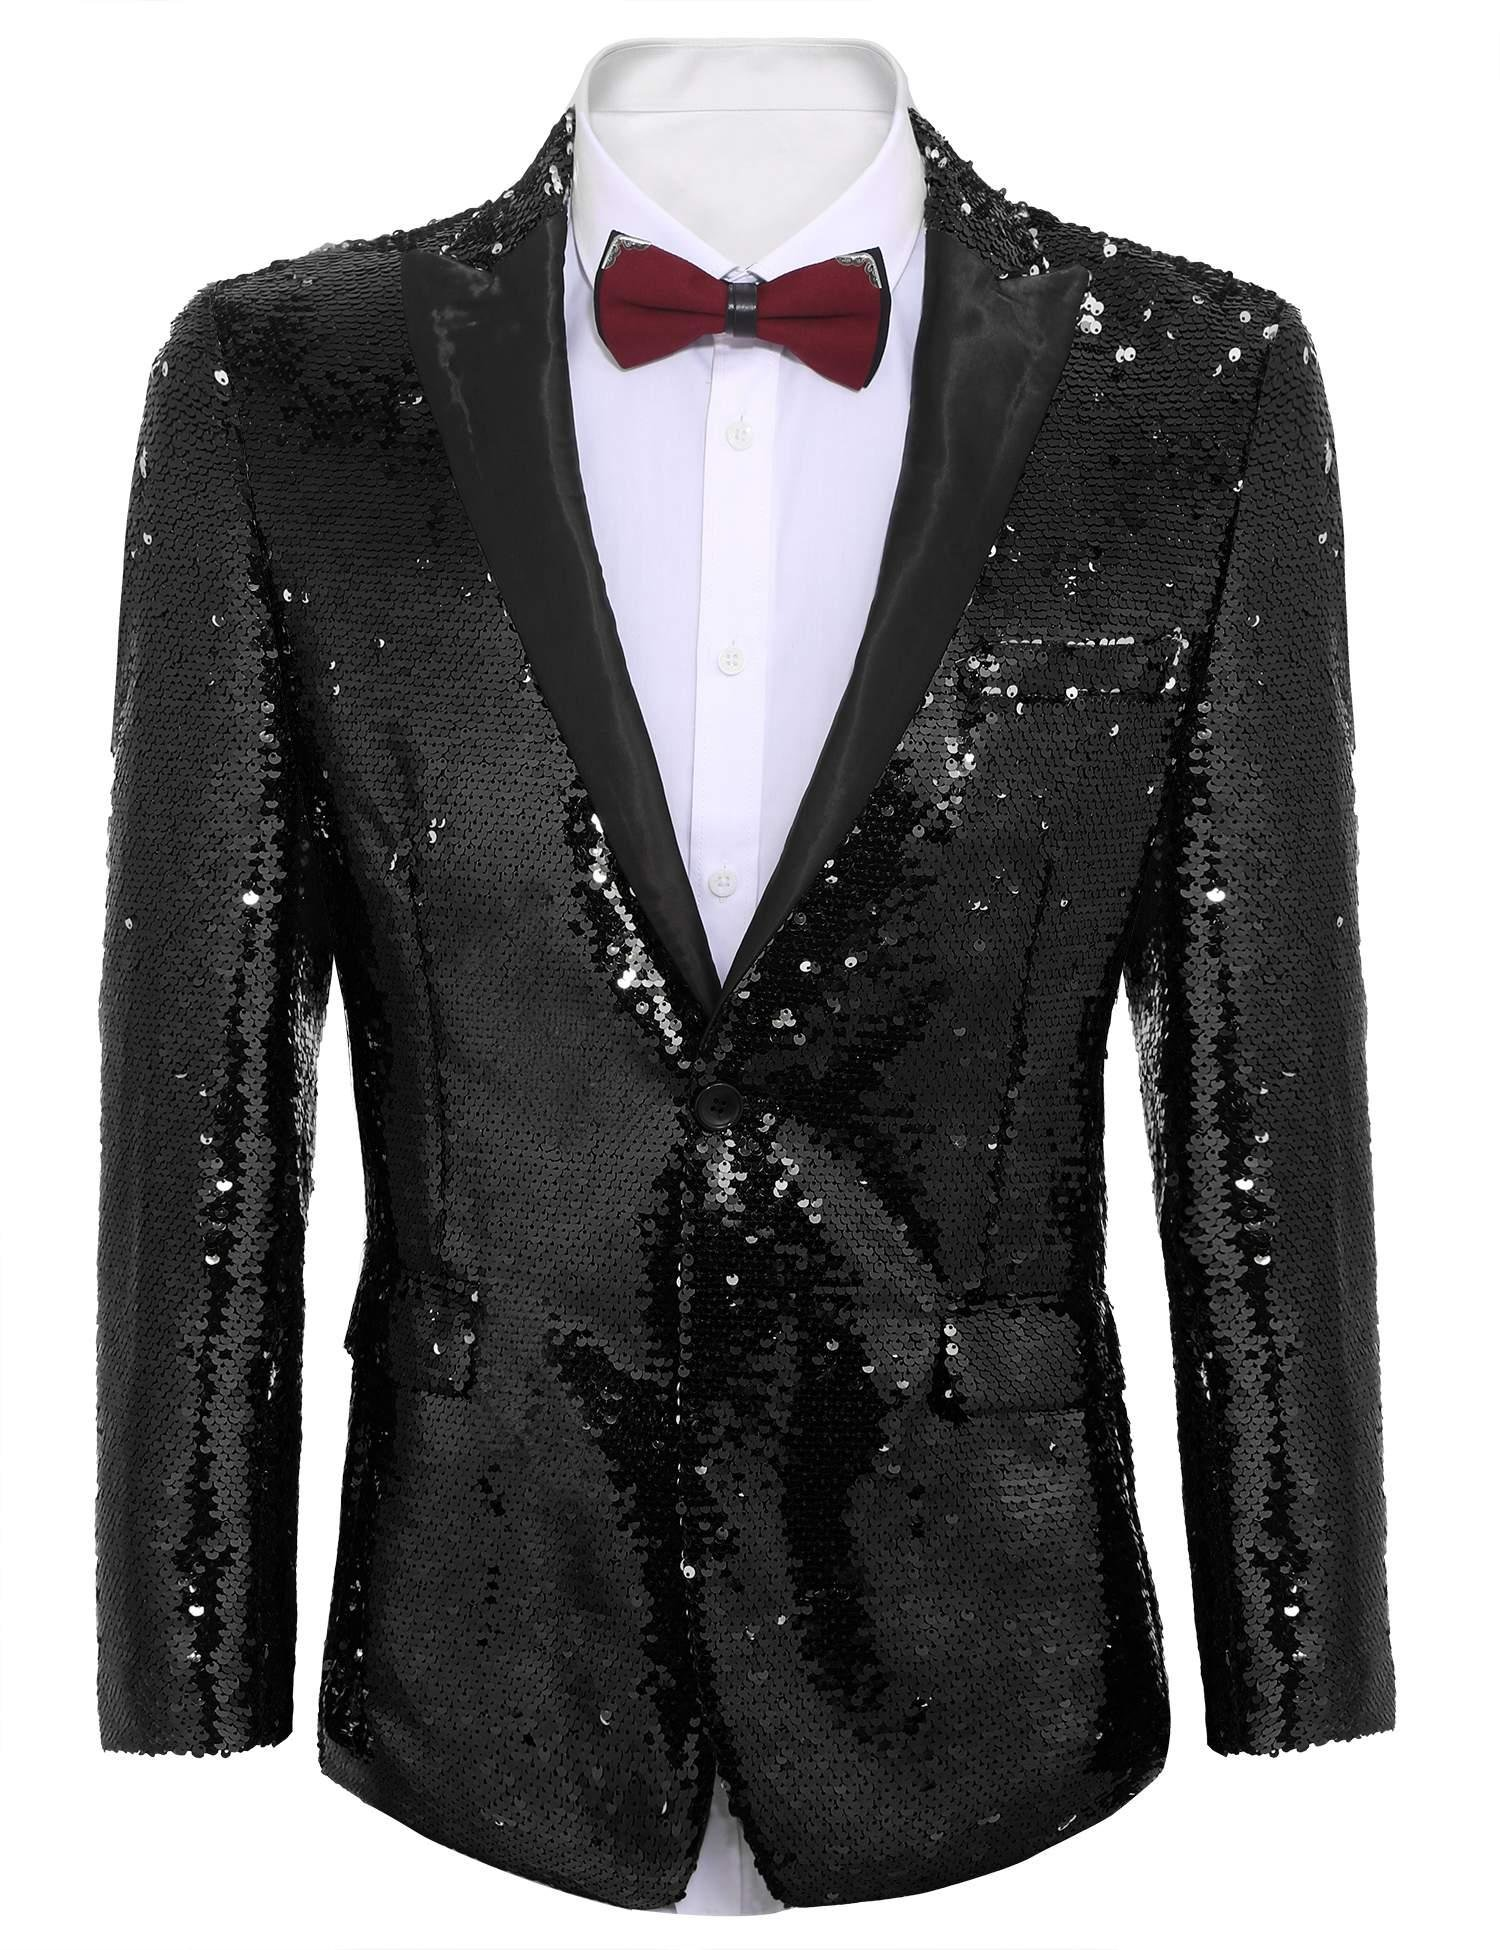 COOFANDY Shiny Sequins Suit Jacket Blazer One Button Tuxedo for Party,Wedding,Banquet,Prom,Nightclub (XXL, Pitch-Black)